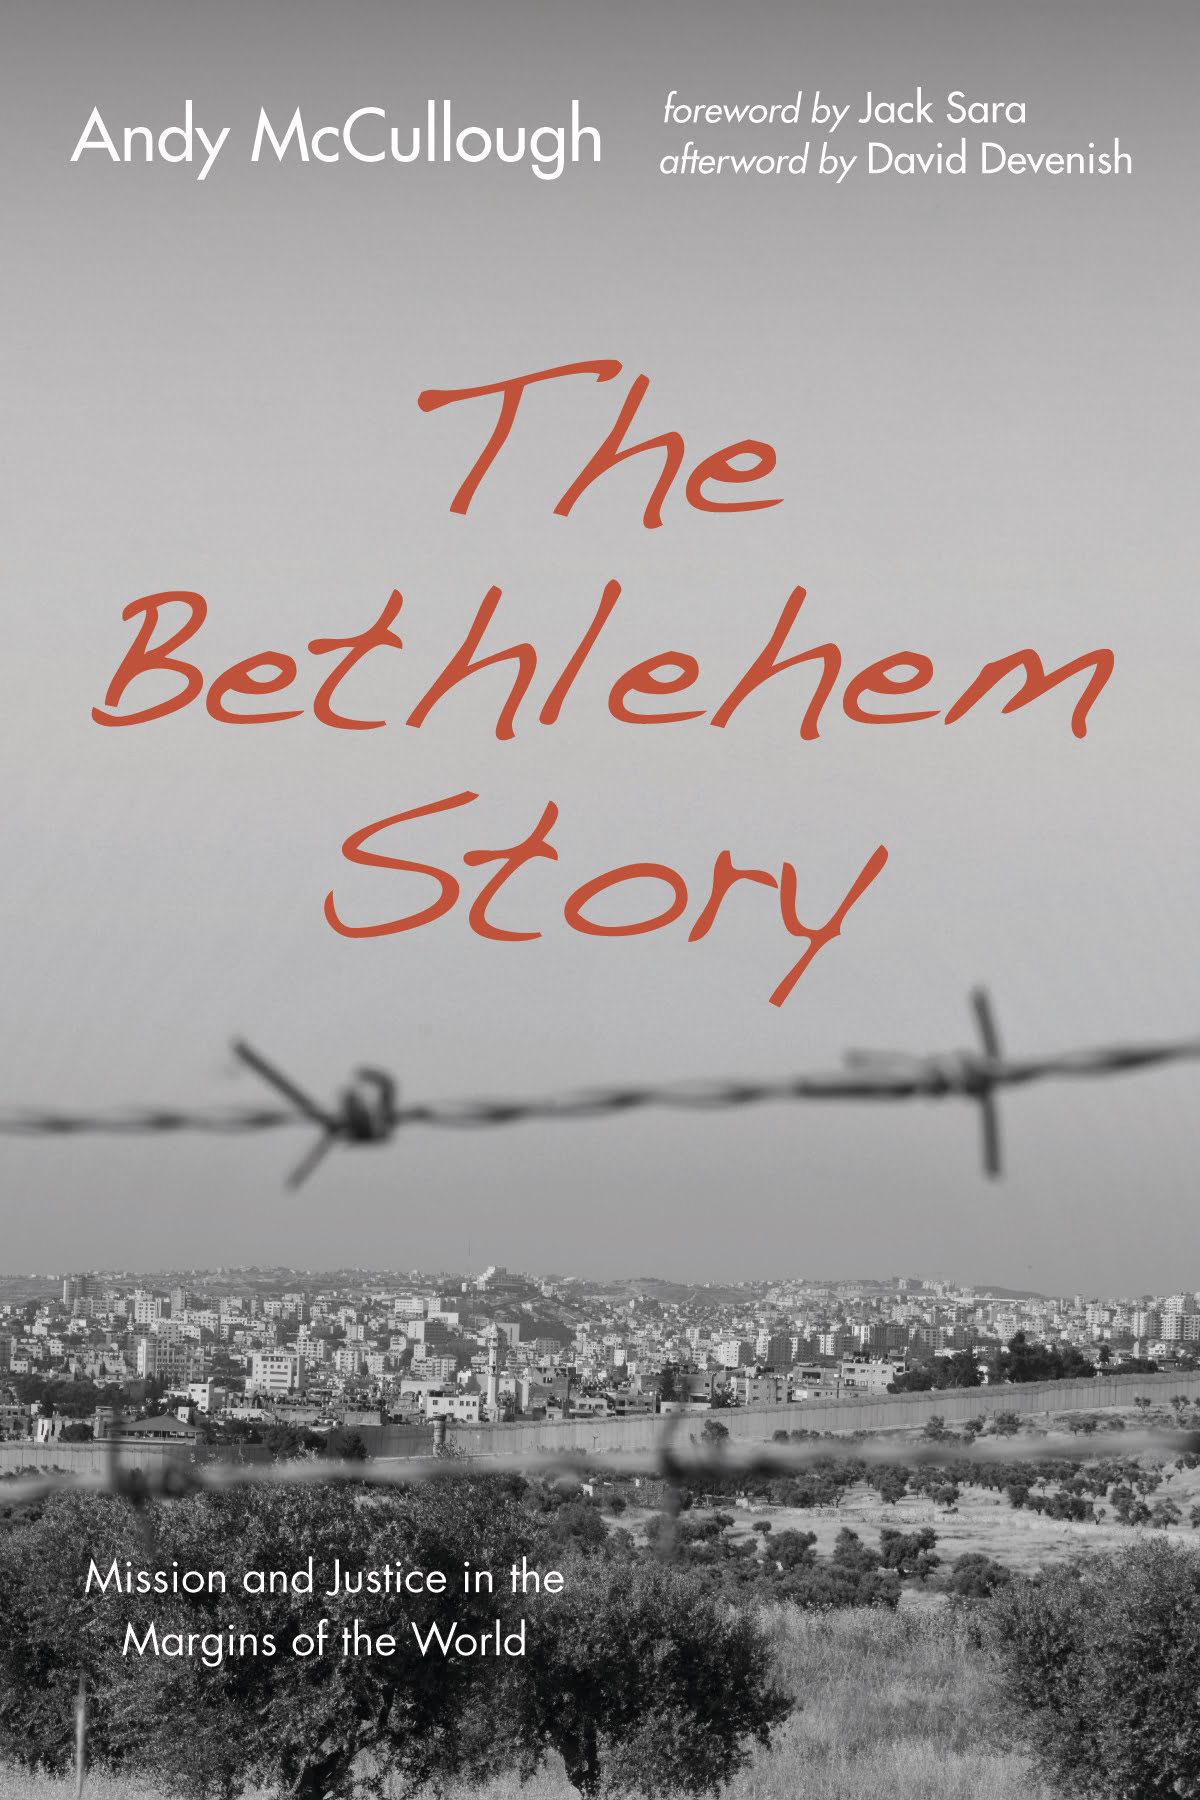 The Bethlehem Story: Mission and Justice in the Margins of the World, by Andy McCullough